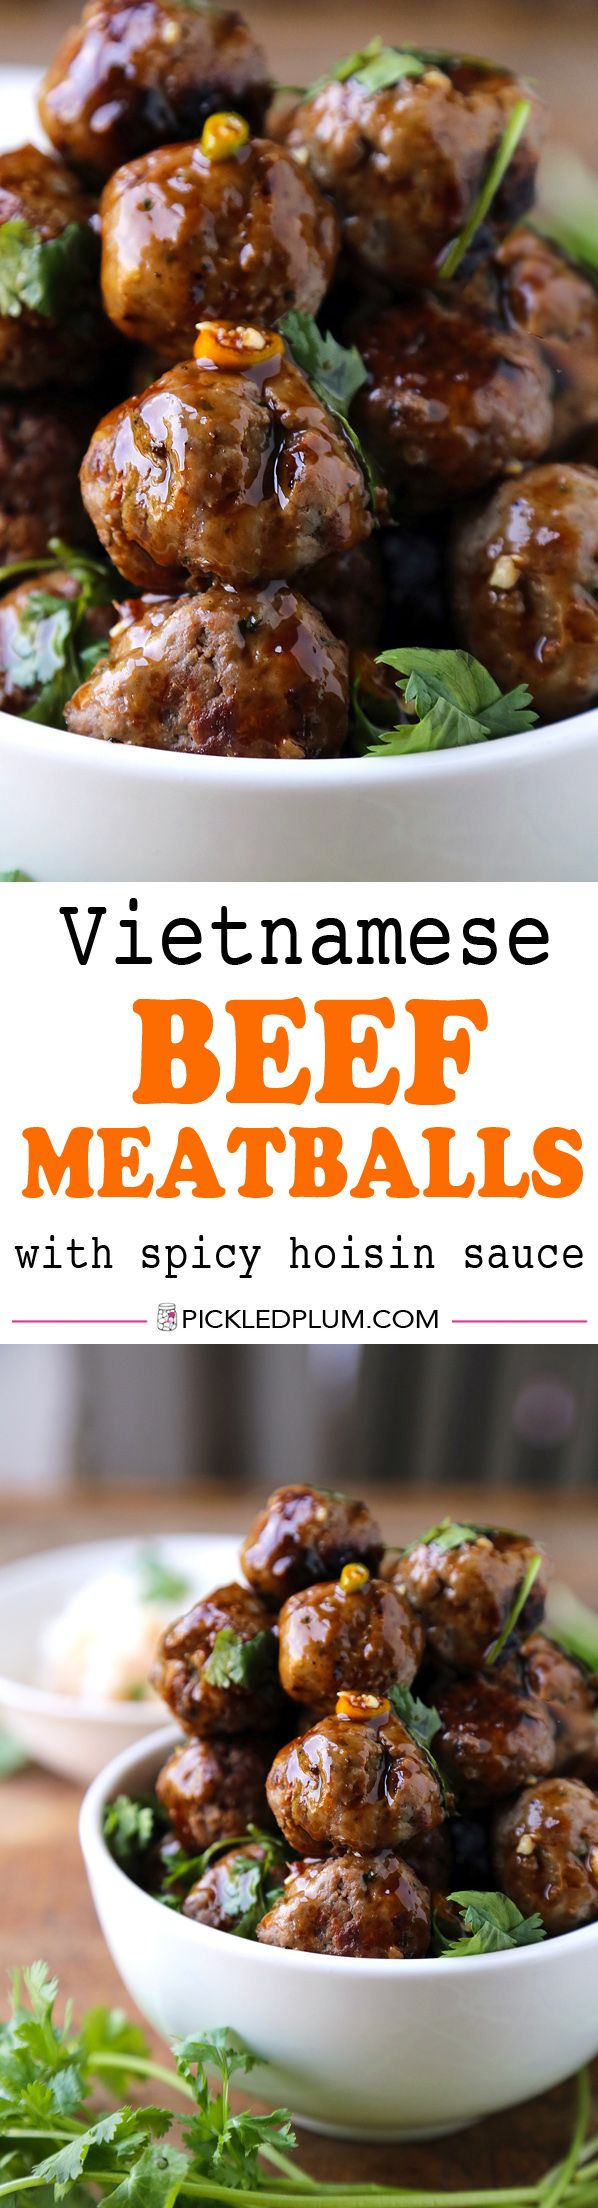 Vietnamese Beef Meatballs With Spicy Hoisin Sauce - SO easy to make! The tastiest, most savory meatballs you've ever tasted! We love these with freshly sliced tomatoes and coriander!   pickledplum.com